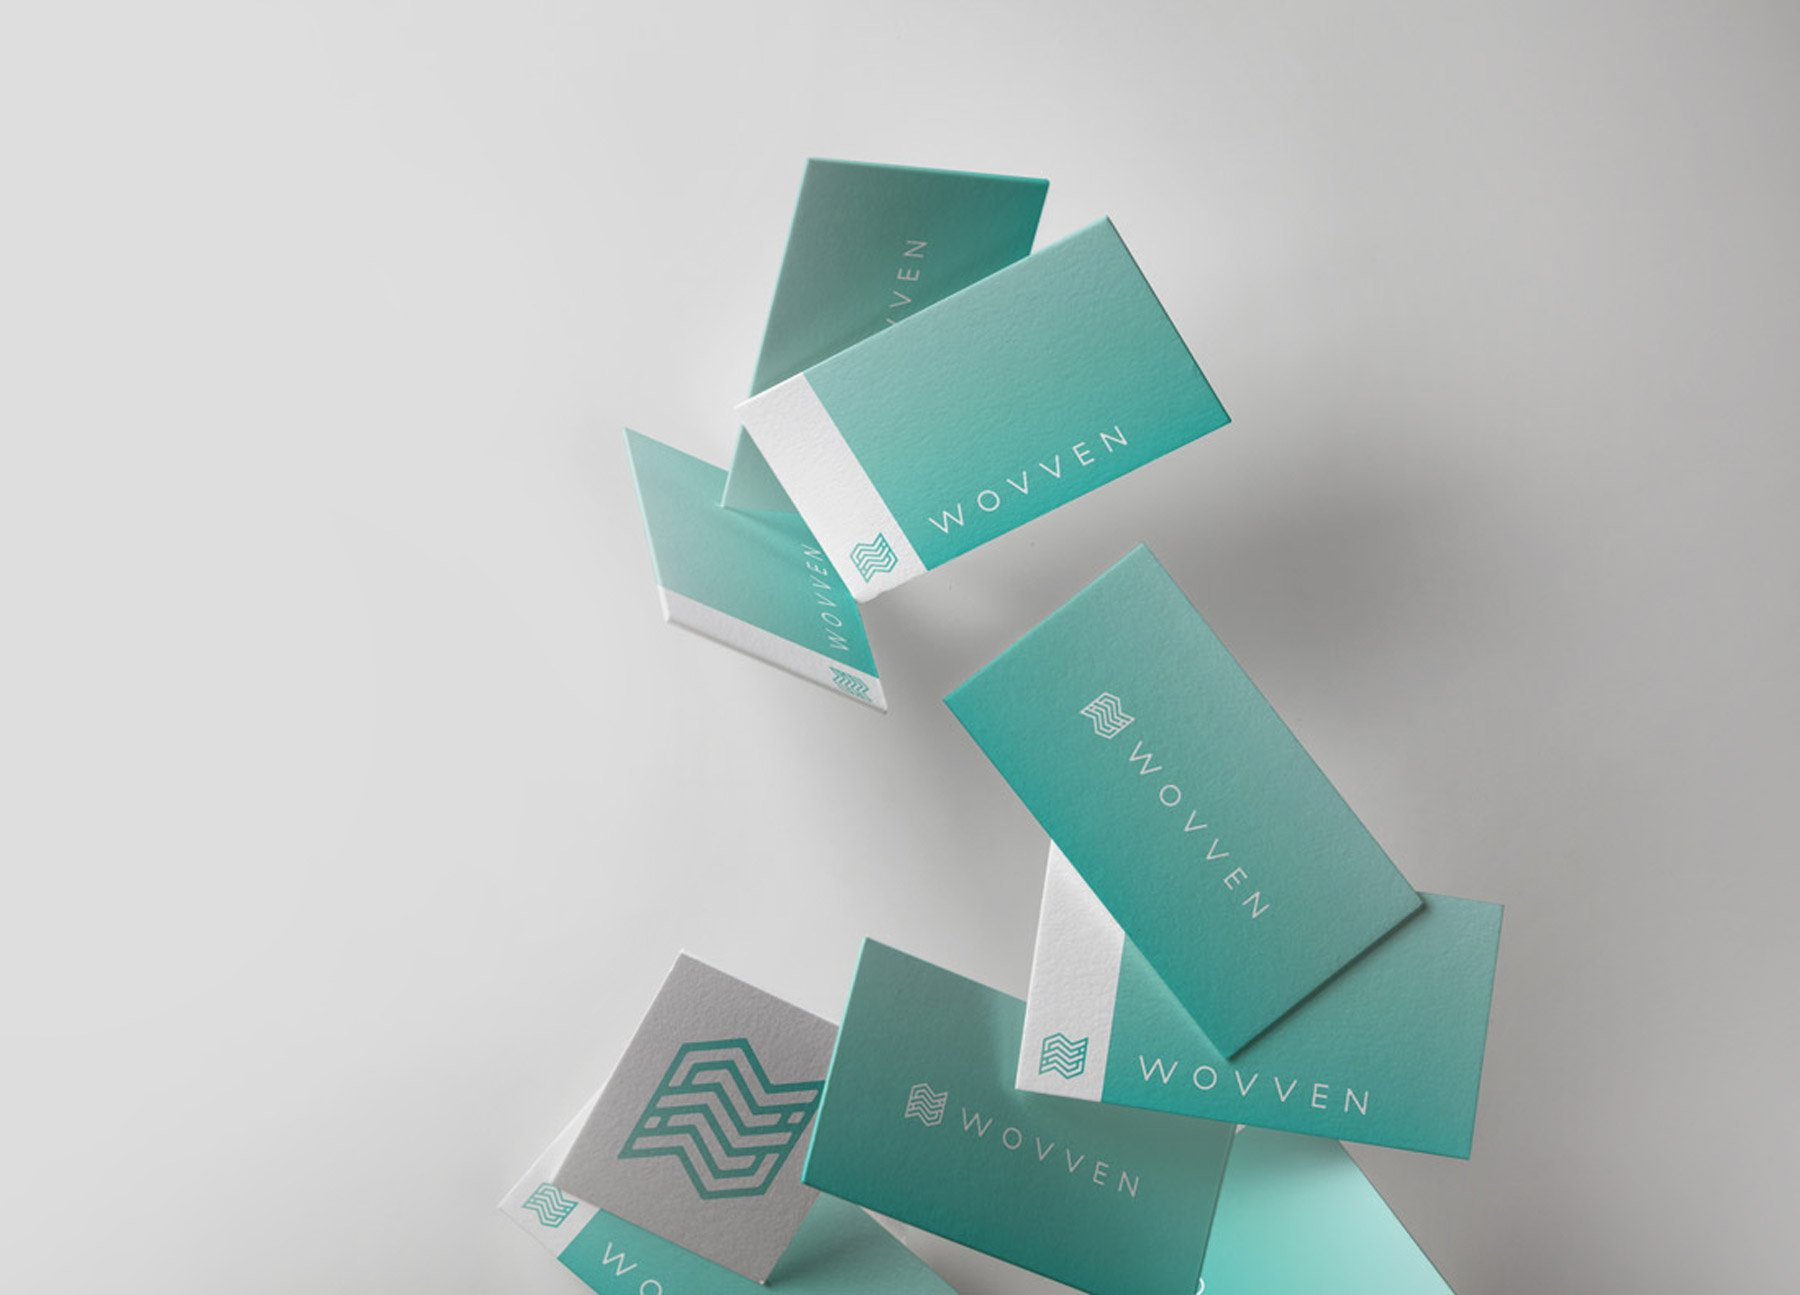 Wovven business cards